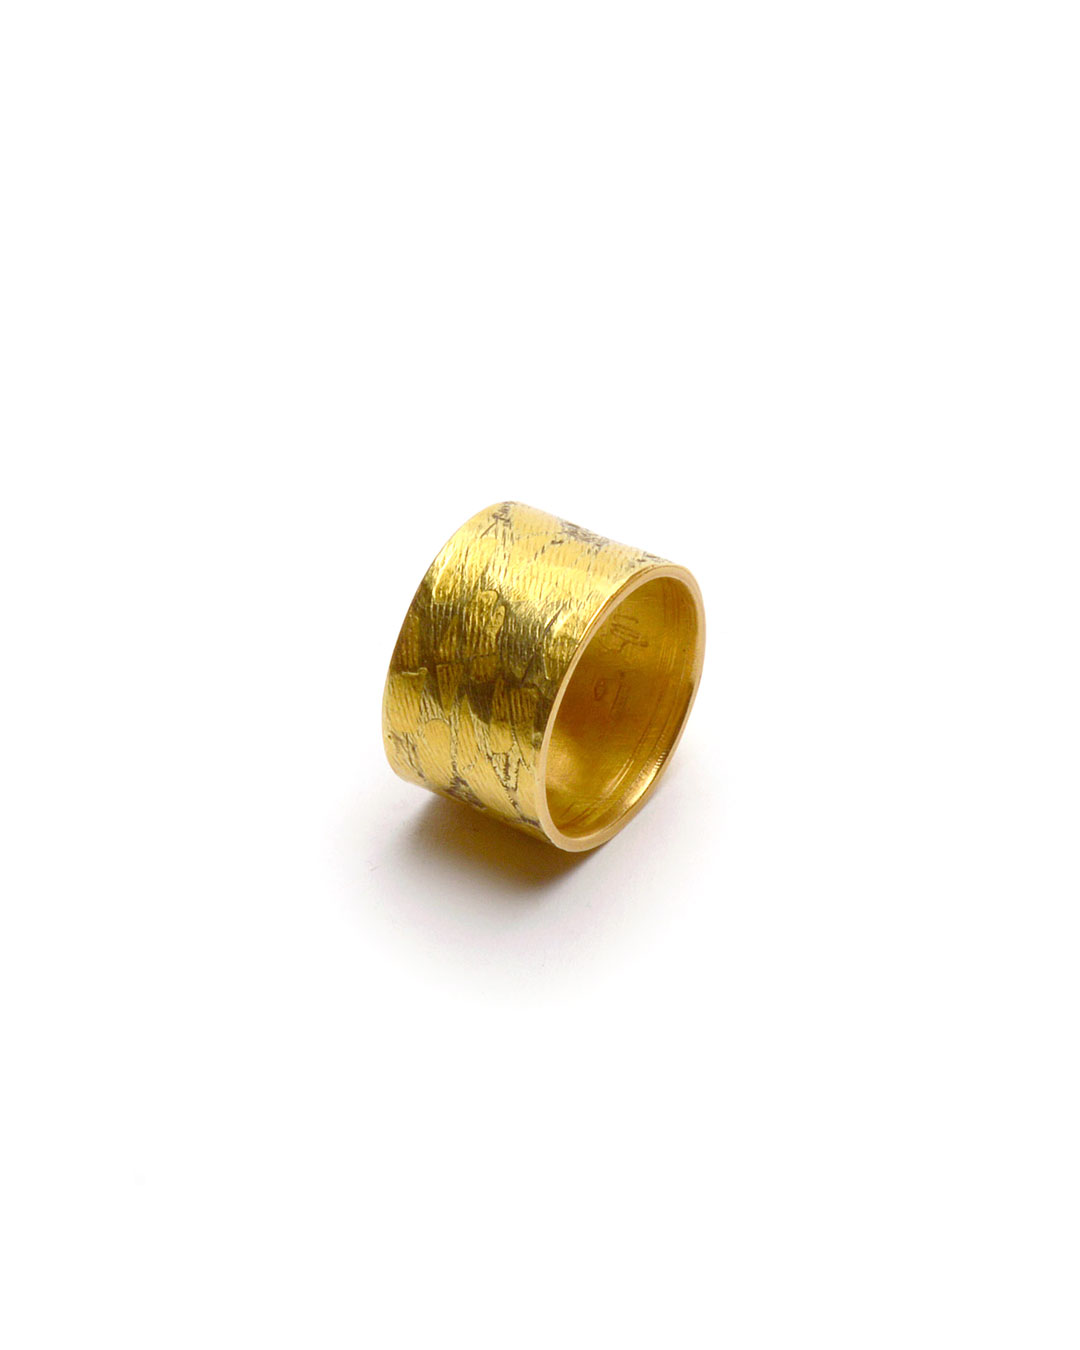 Stefano Marchetti, untitled, 2000, ring, gold, 20 x 20 x 12 mm, €5000